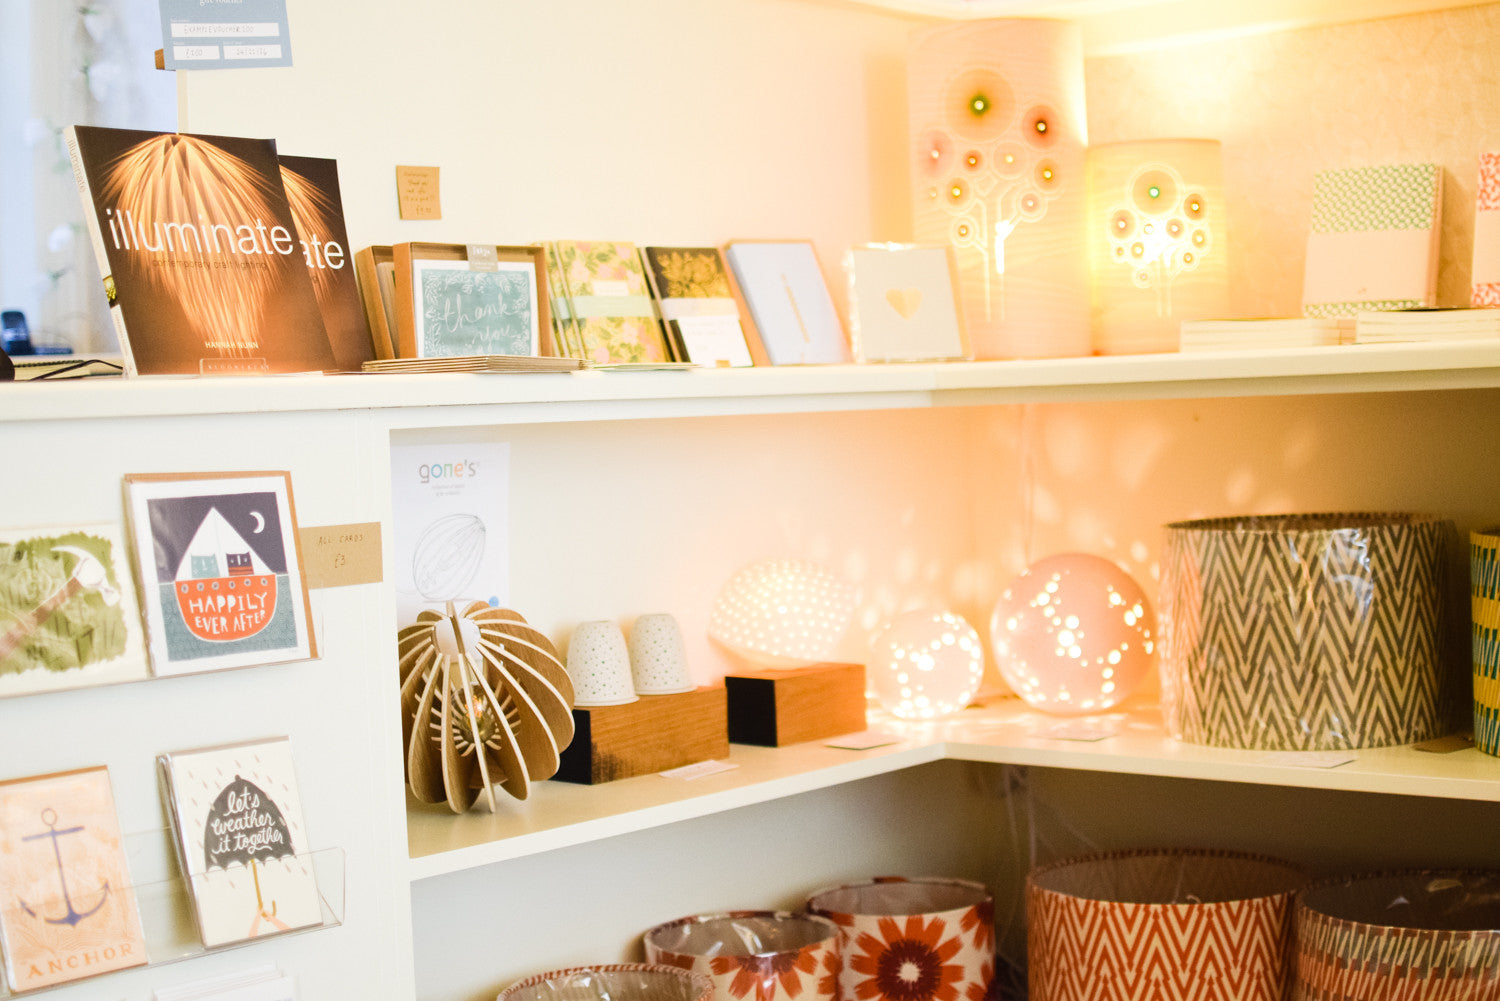 Unusual lighting, homewares and gifts at Radiance in Hebden Bridge